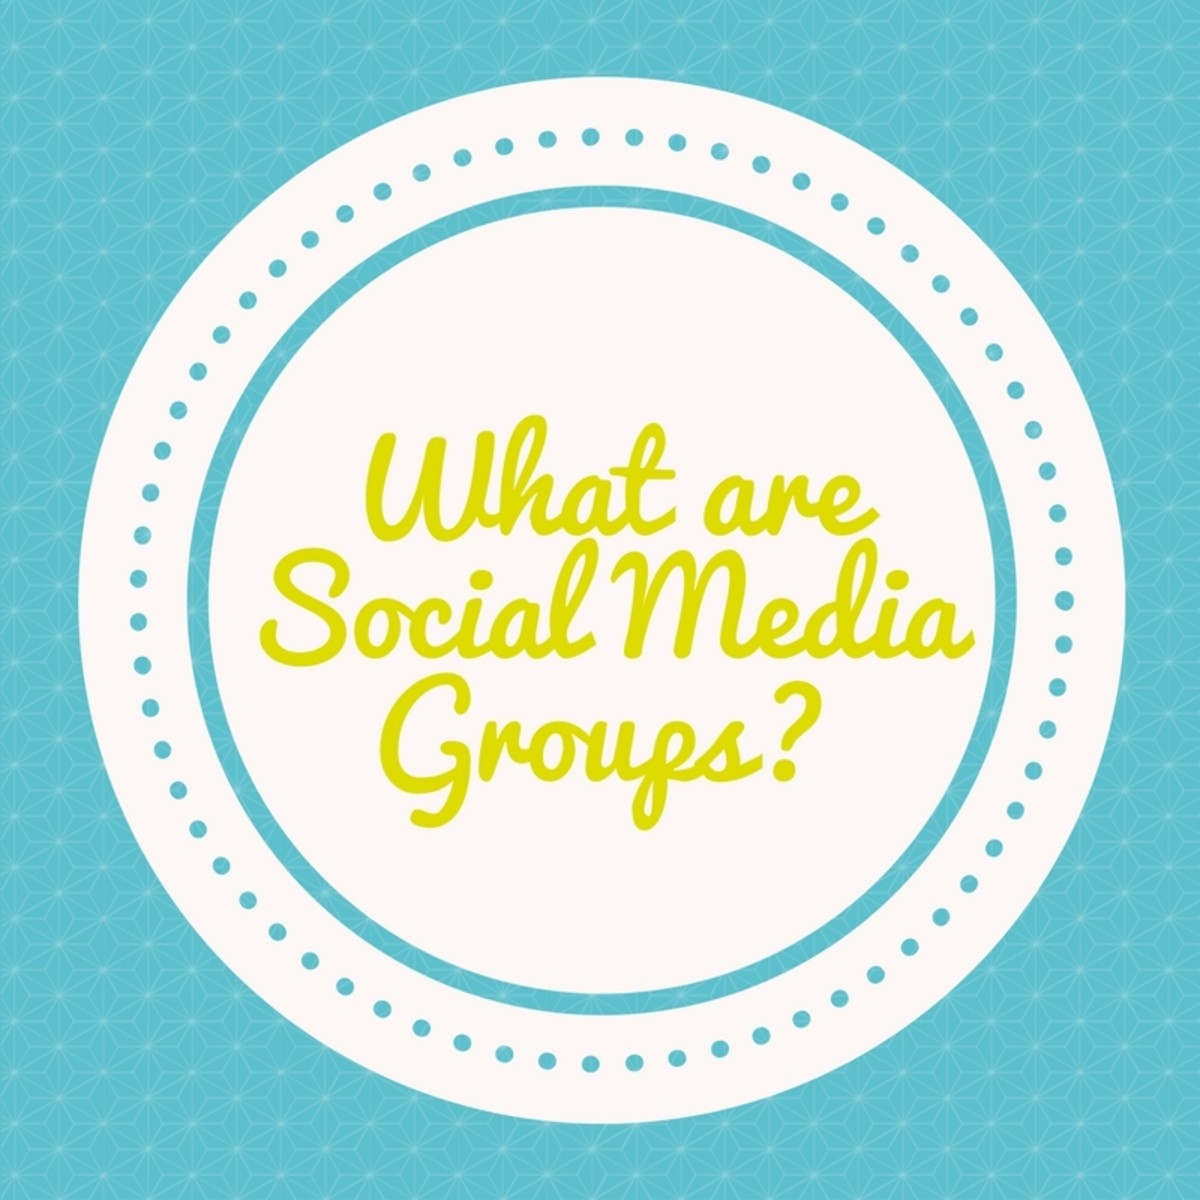 What are Social Media Groups?